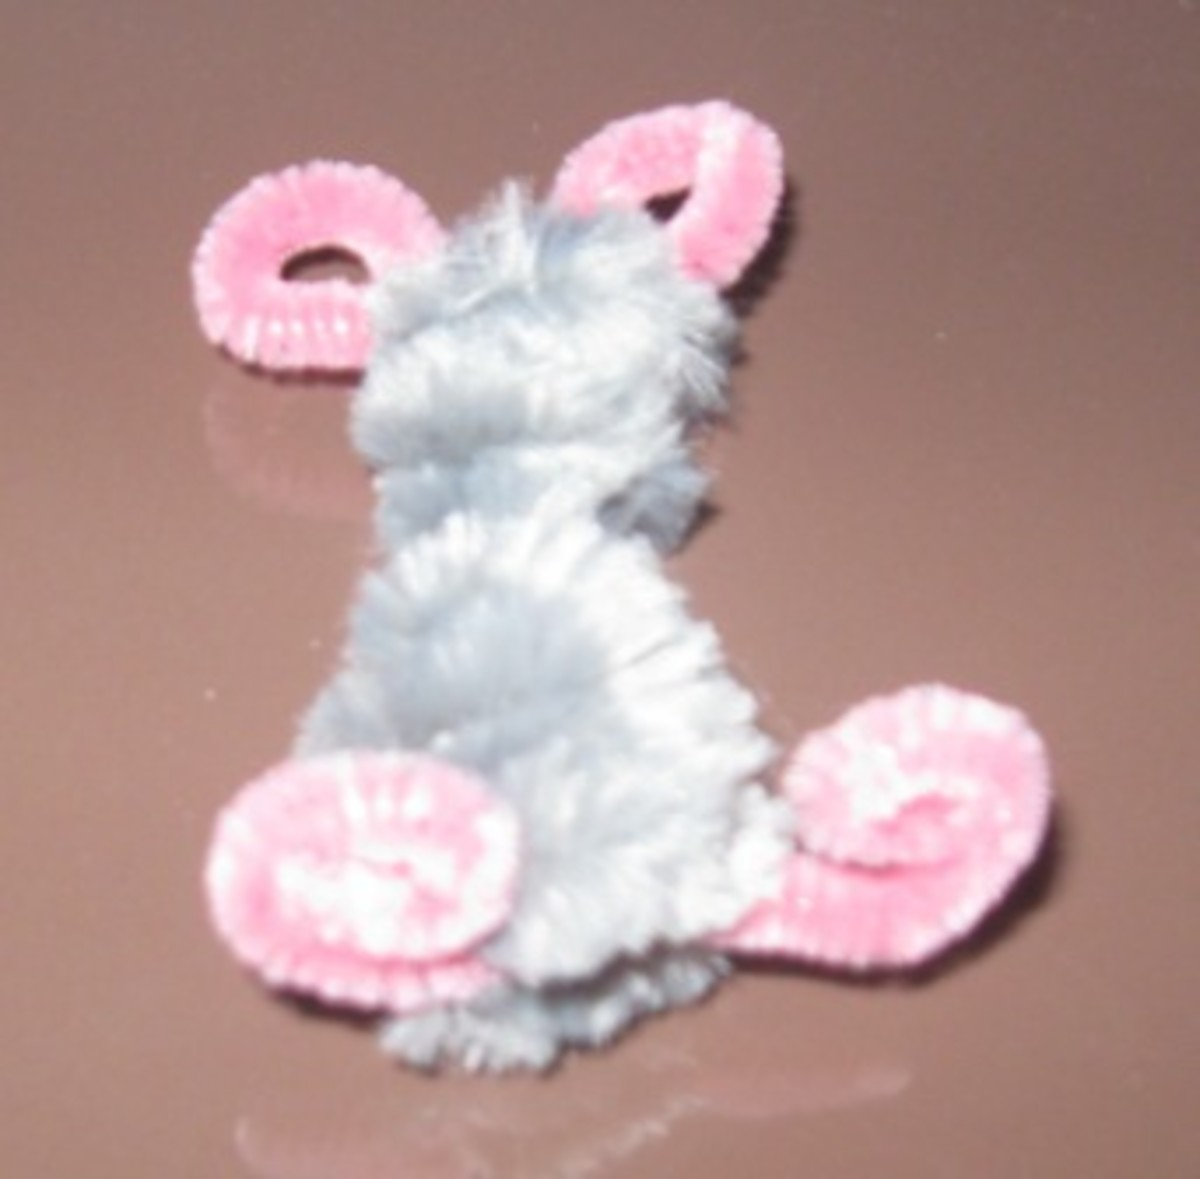 4. Push the center of the pink pipe cleaner down and shape around a pencil to form the mouses ears.